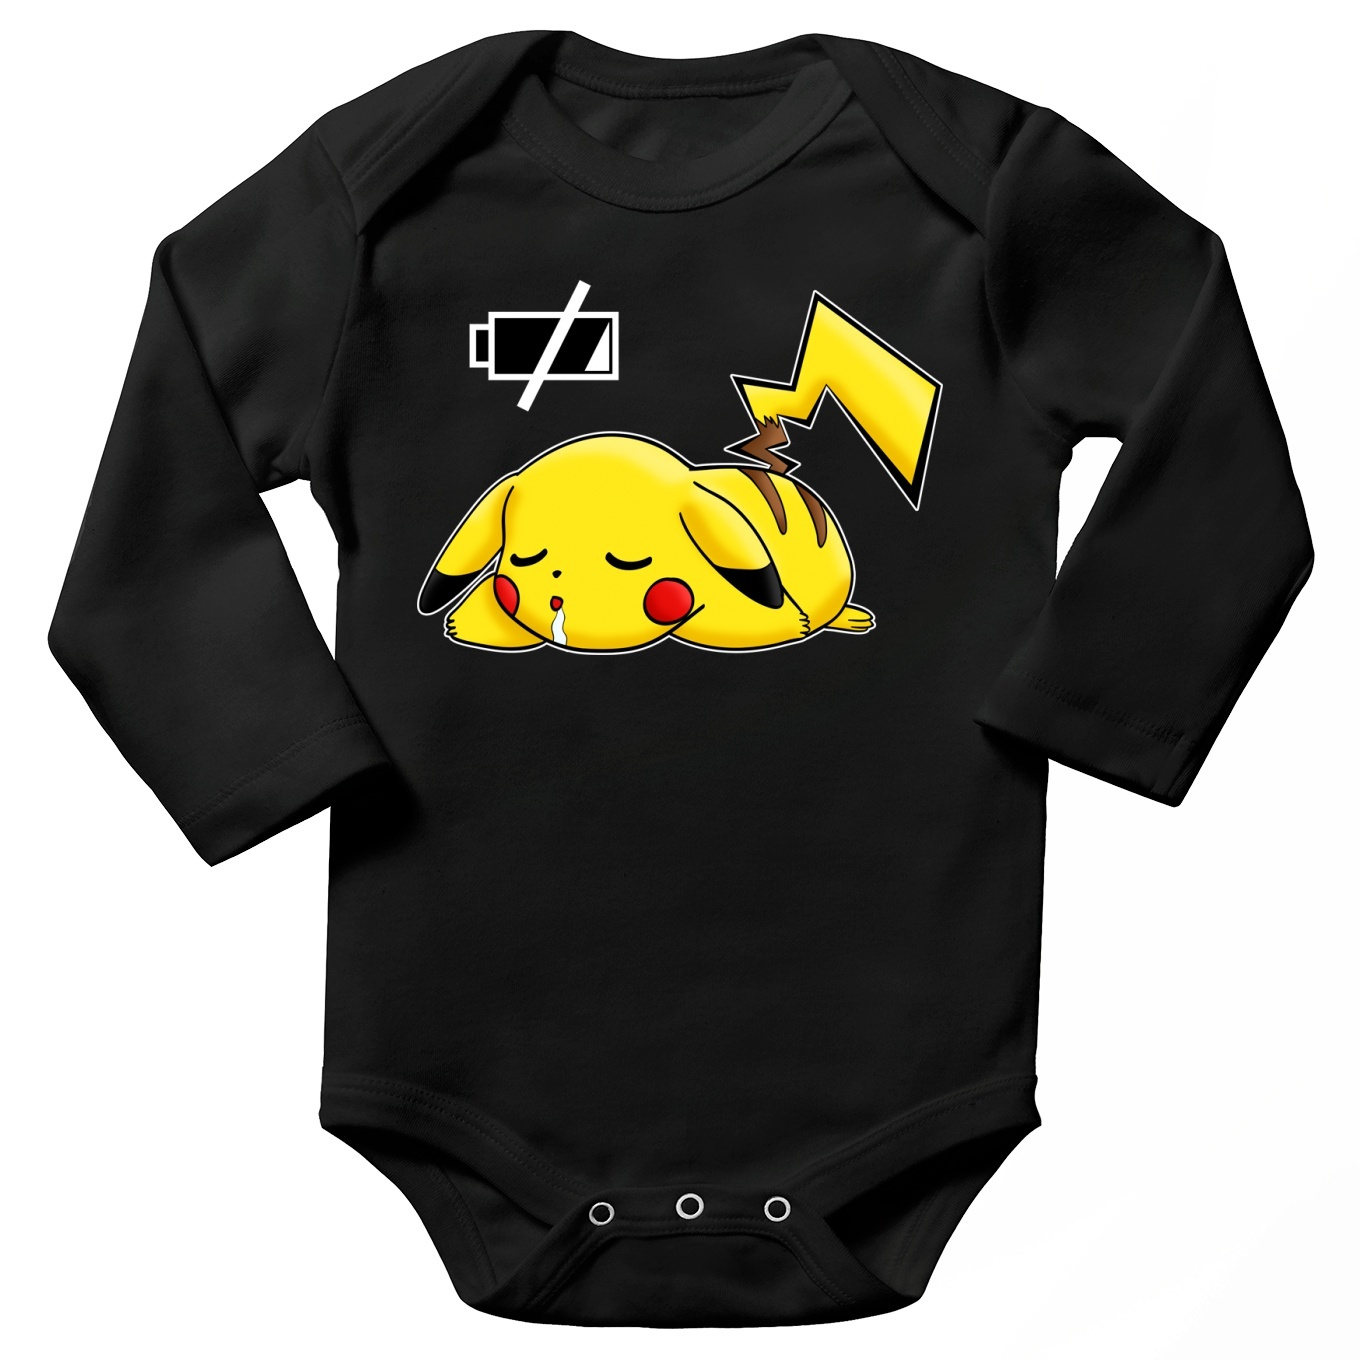 Long sleeve Baby Bodysuits Video Games Parodies